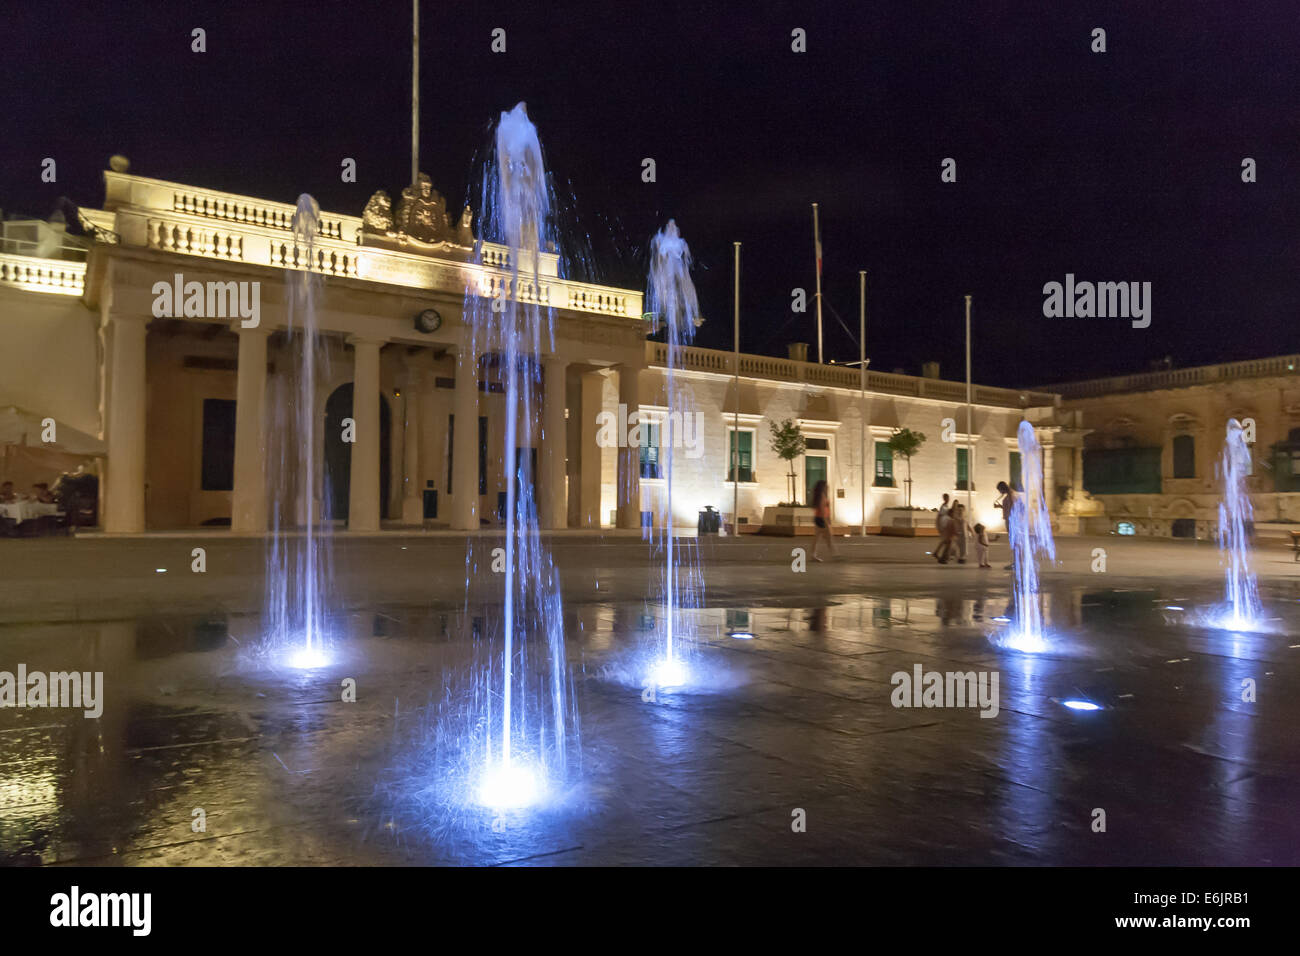 St George's Square, the main square of Valletta, the capital of Malta. It is also known as Palace Square - Stock Image